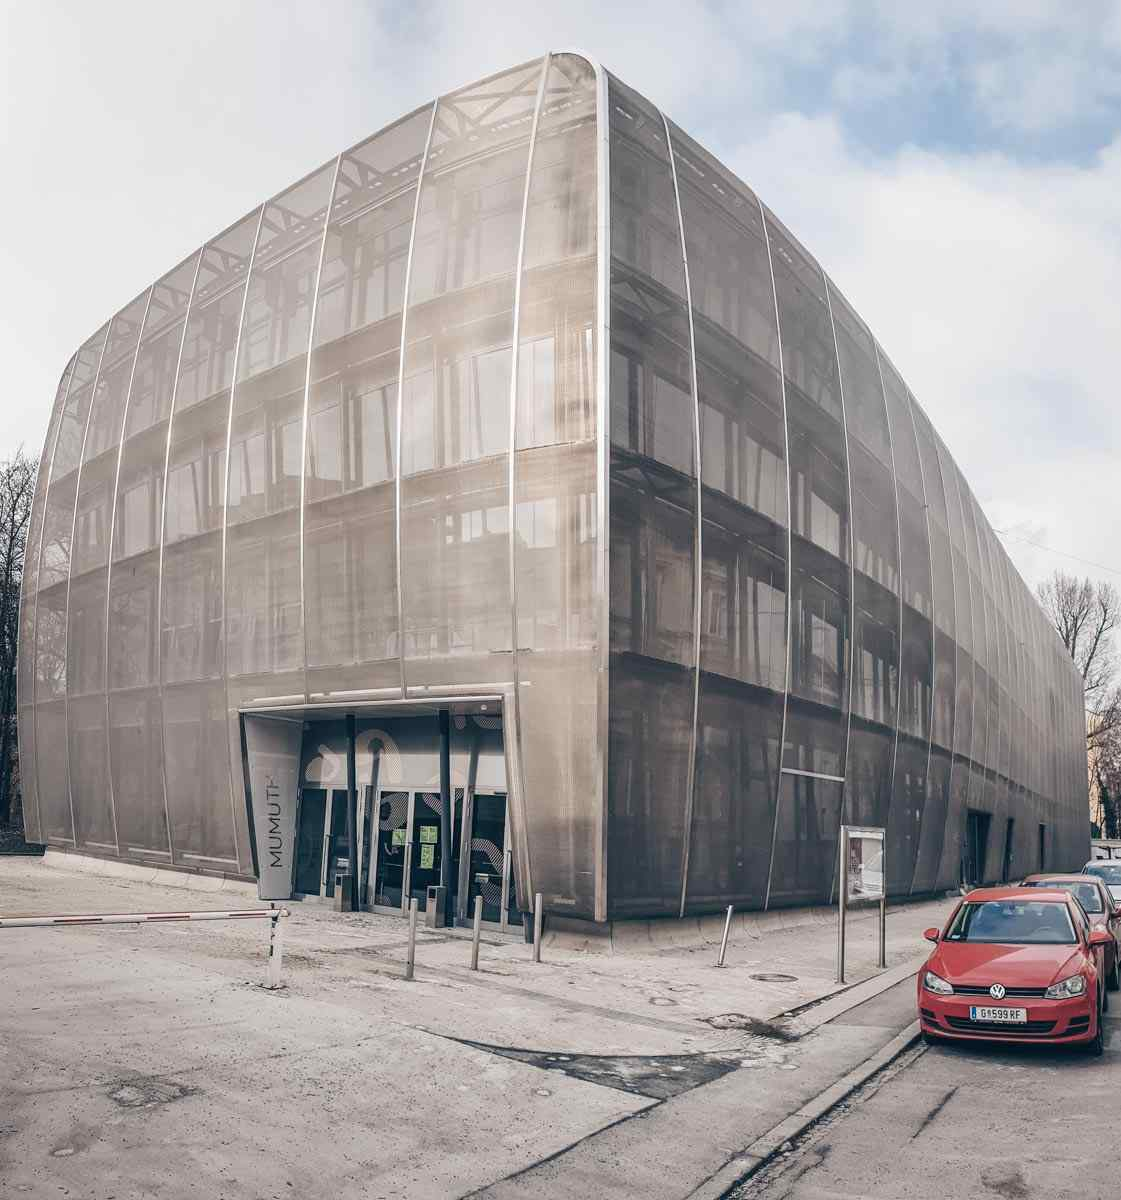 The monochrome metal mesh of MUMUTH-the University of Music and Performing Arts in Graz